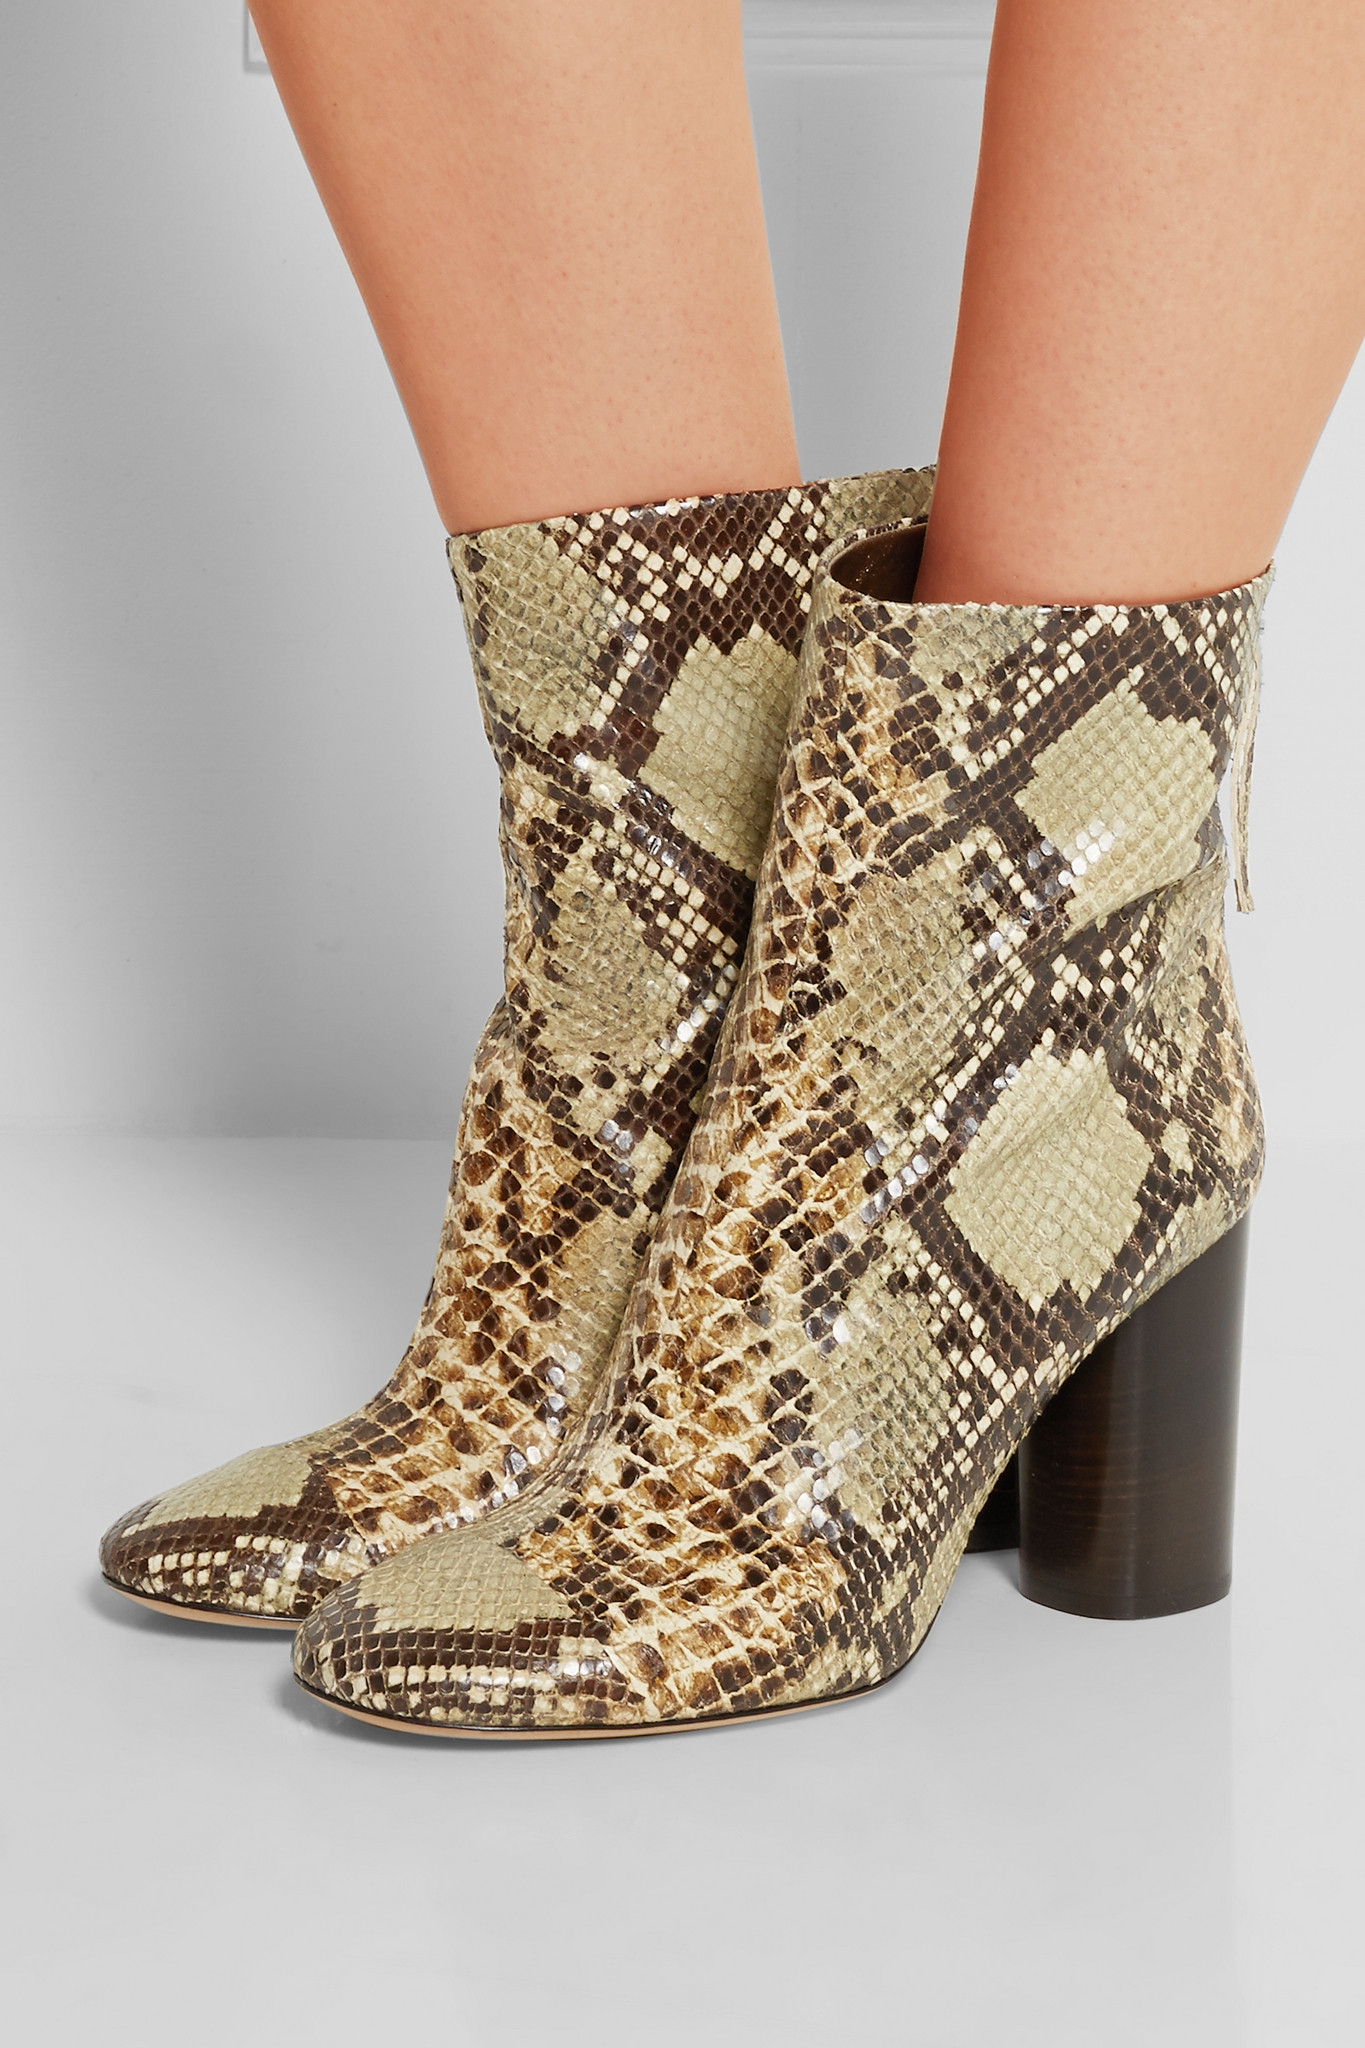 Are River Island Shoes True To Size